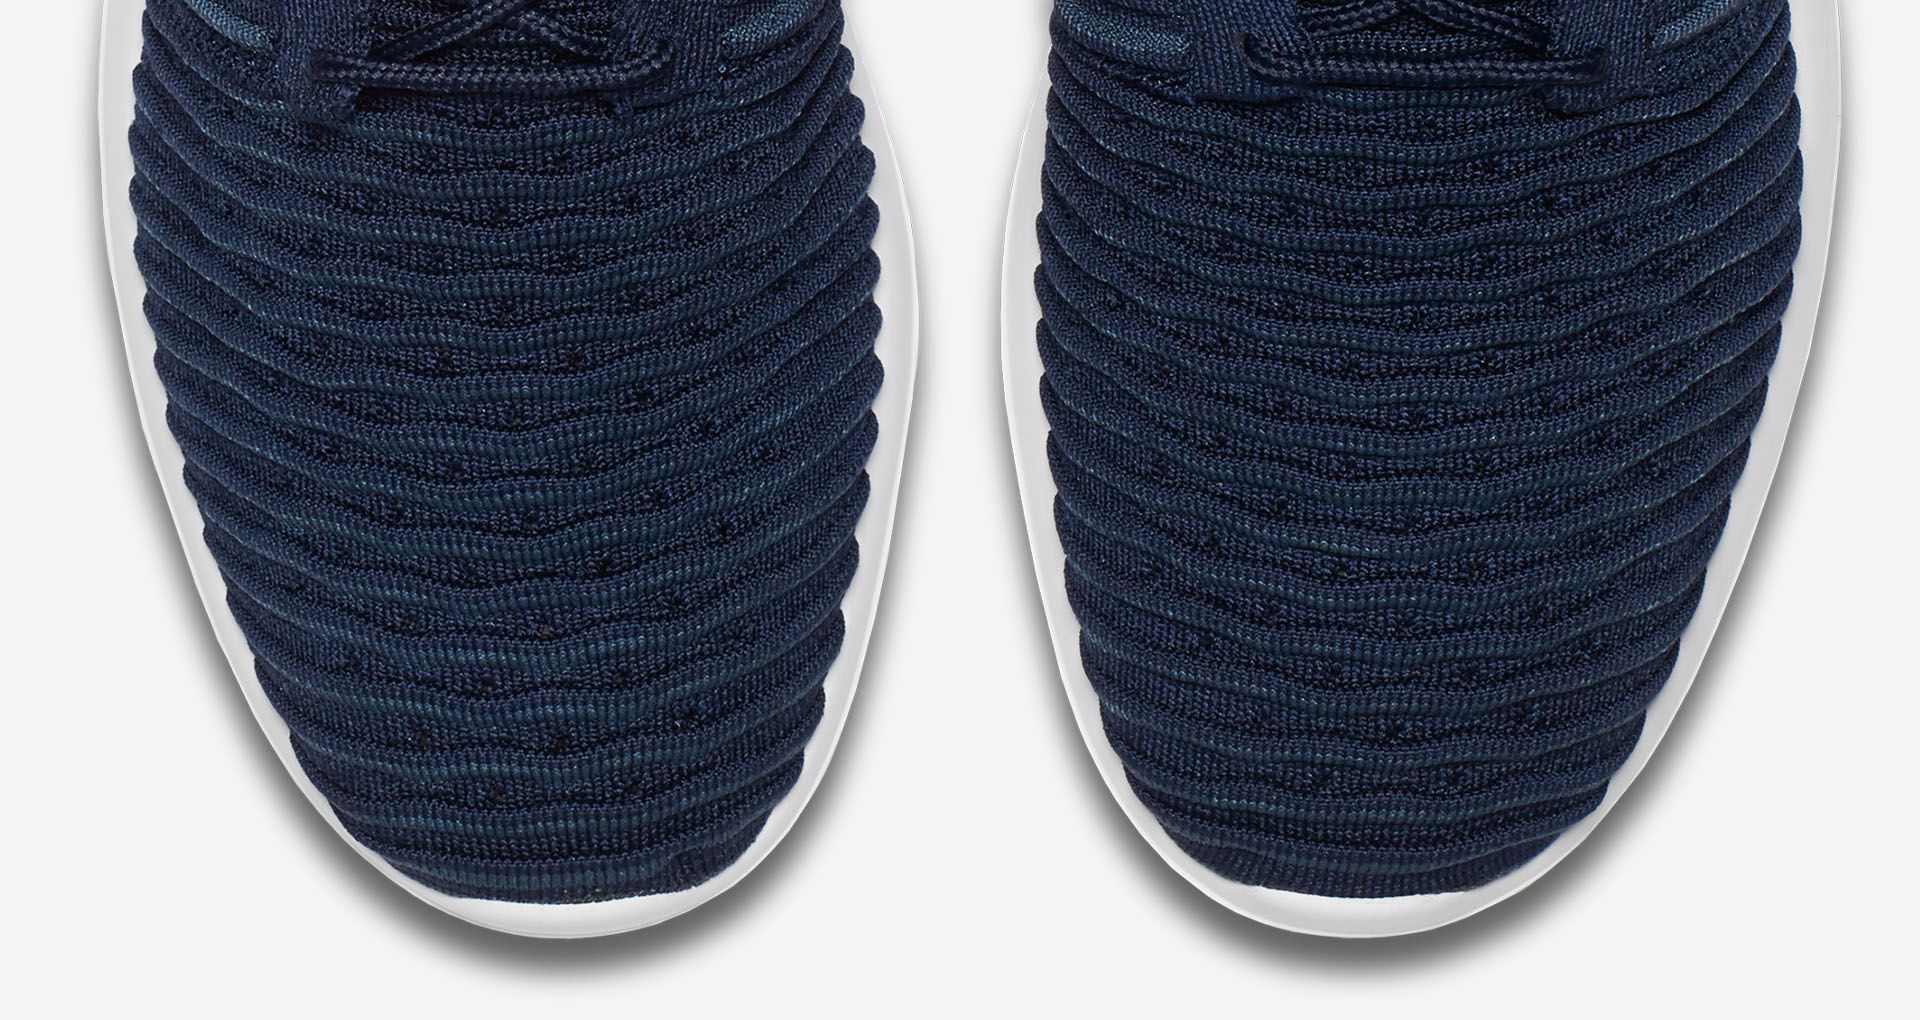 cheap for discount 9b44e 6035a Nike Roshe 2 Flyknit 'College Navy & White'. Nike+ SNKRS